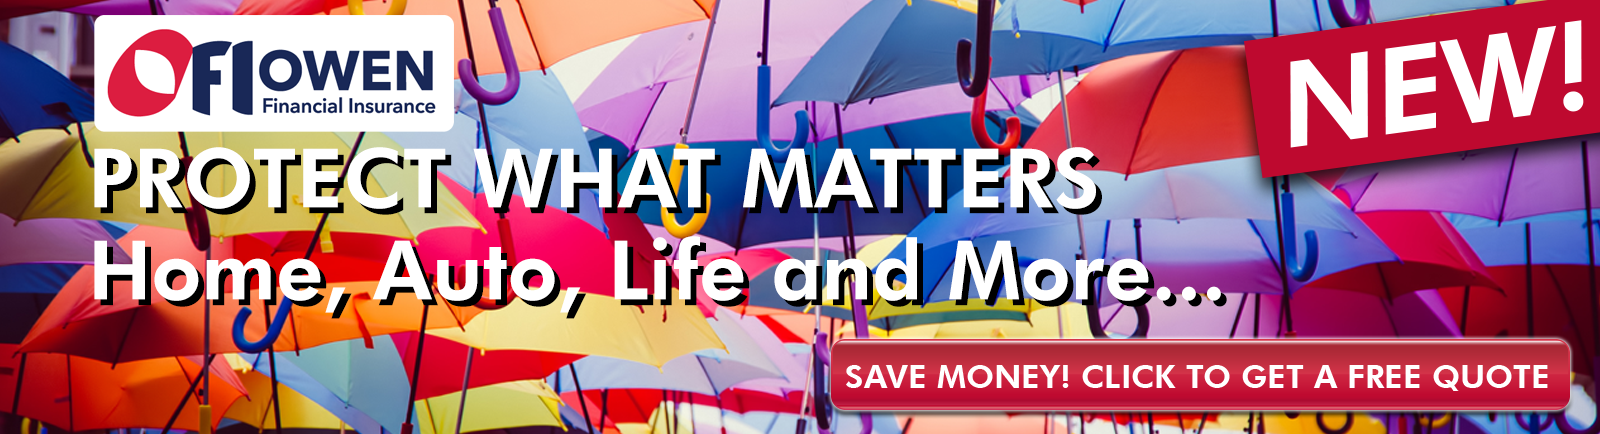 Protect What Matters with Owen Financial Insurance